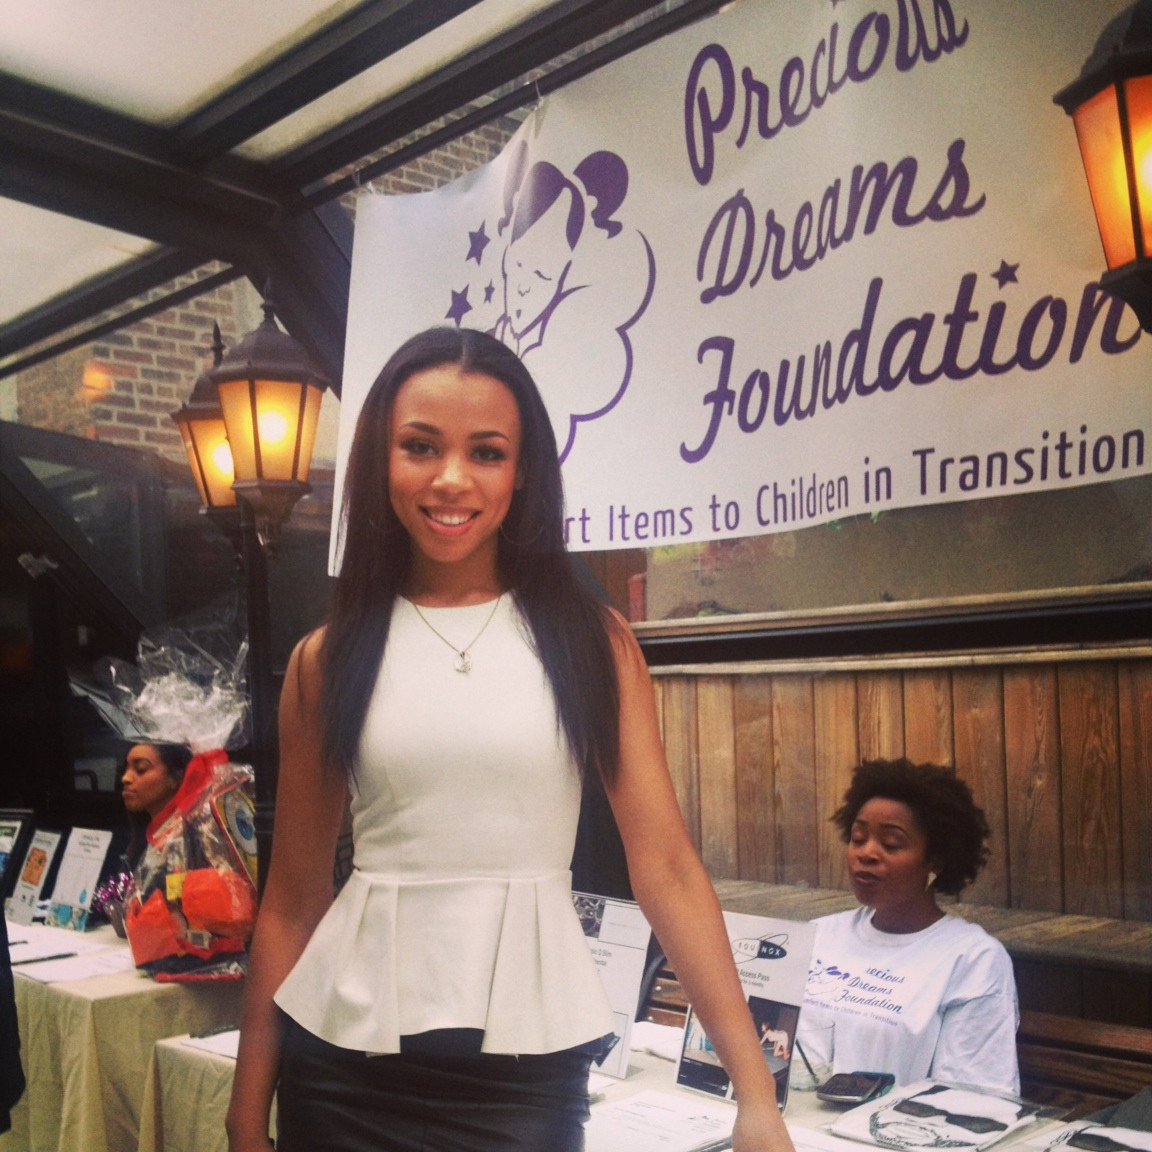 Nicole Russell, Lawrence High School class of 2004, started Precious Dreams Foundation to provide comfort to children in foster care.